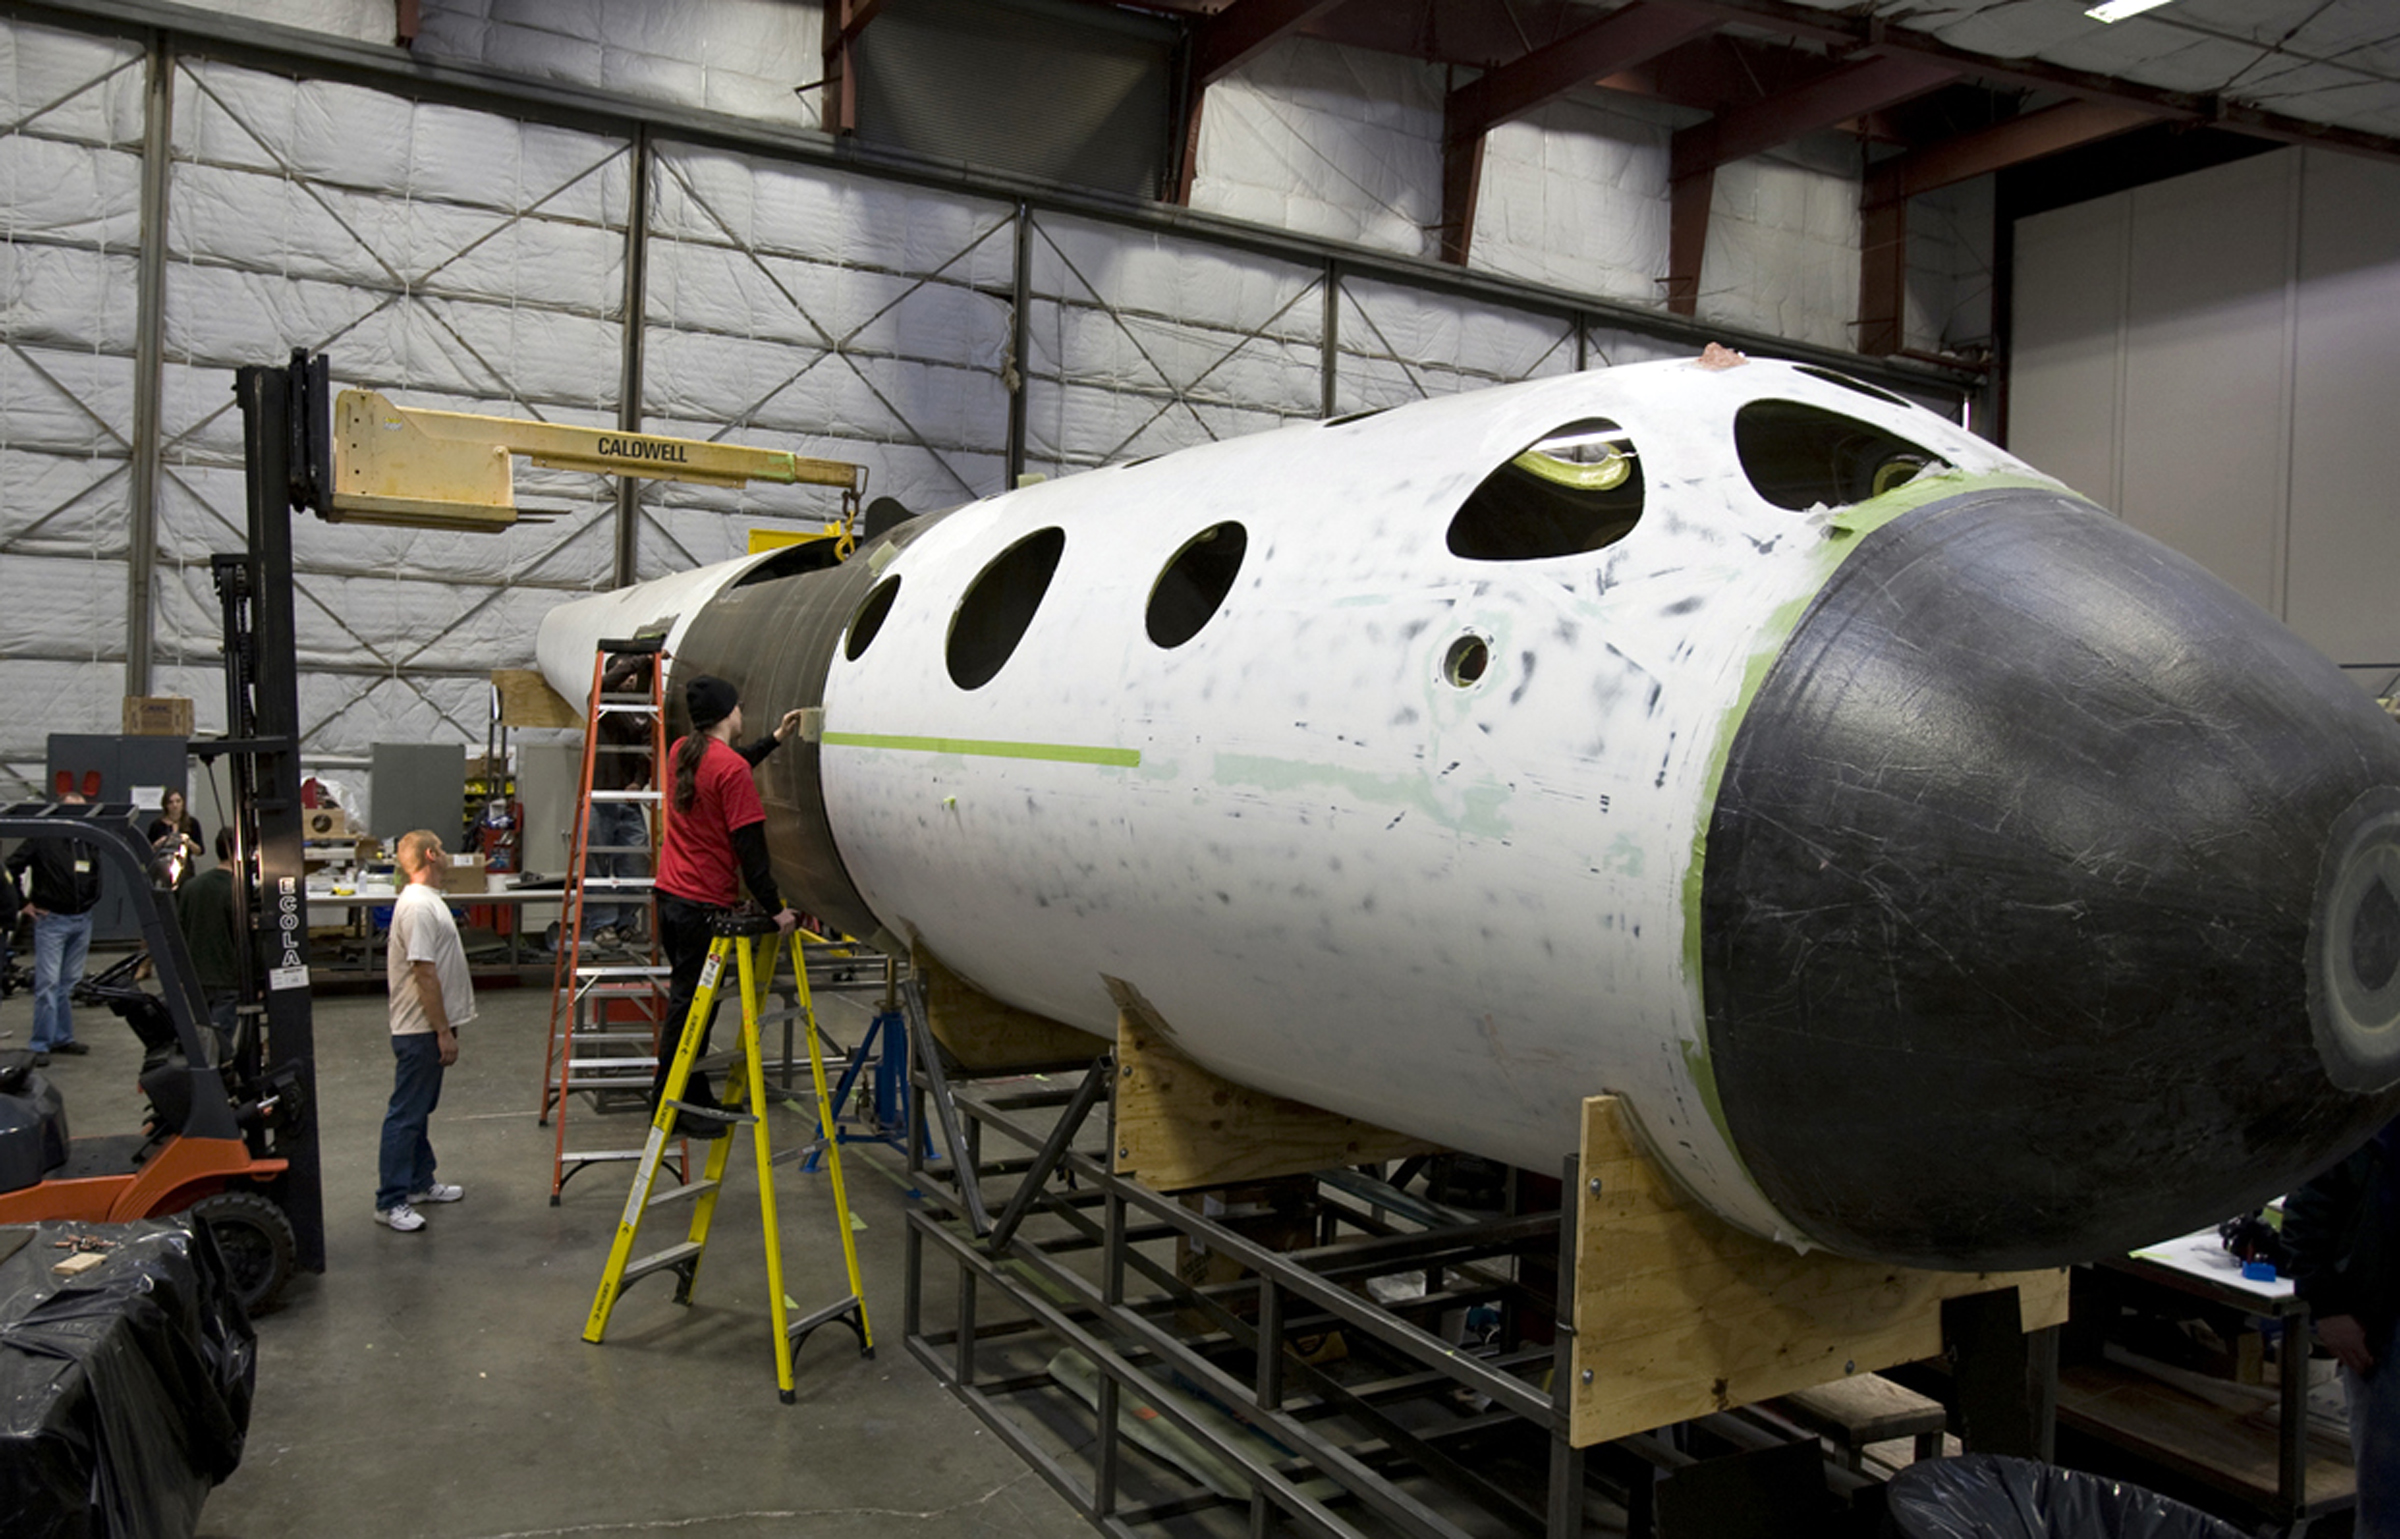 Albuquerque, NM - CEO: Virgin Galactic Looks To Resume Tests In 2015